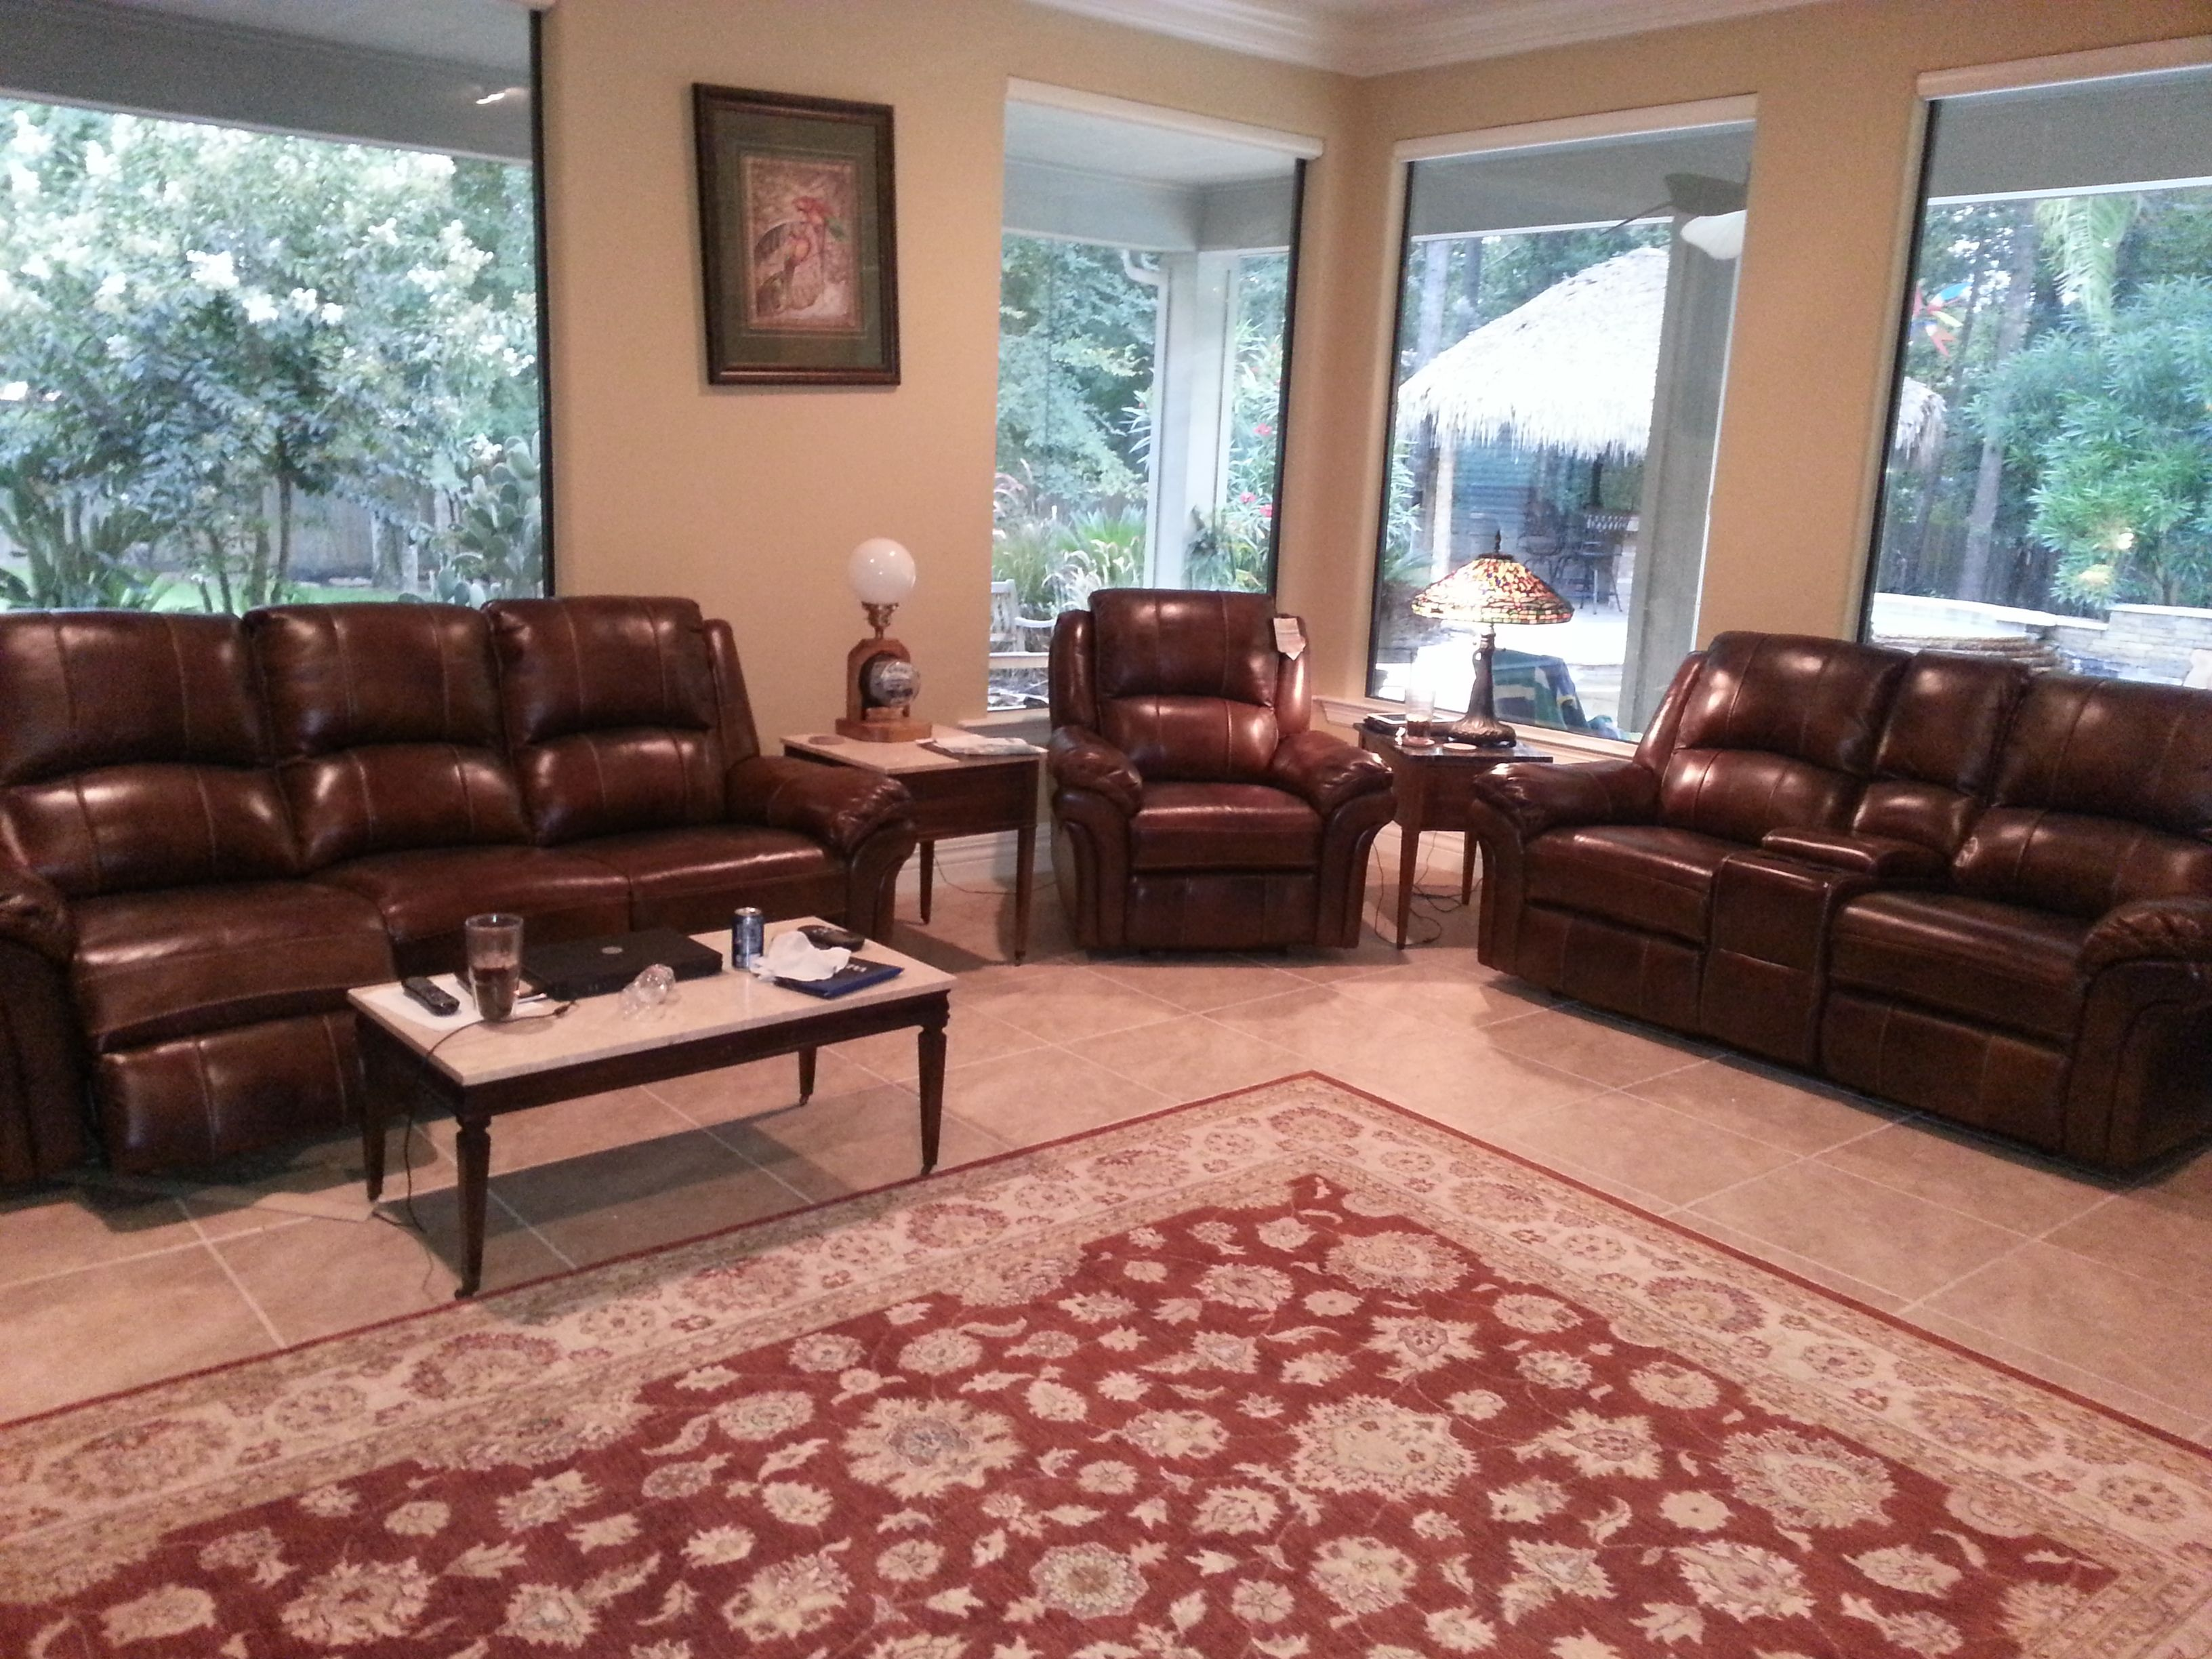 A magnolia tx family fell in love with this flexsteel - Cheap living room sets in houston tx ...